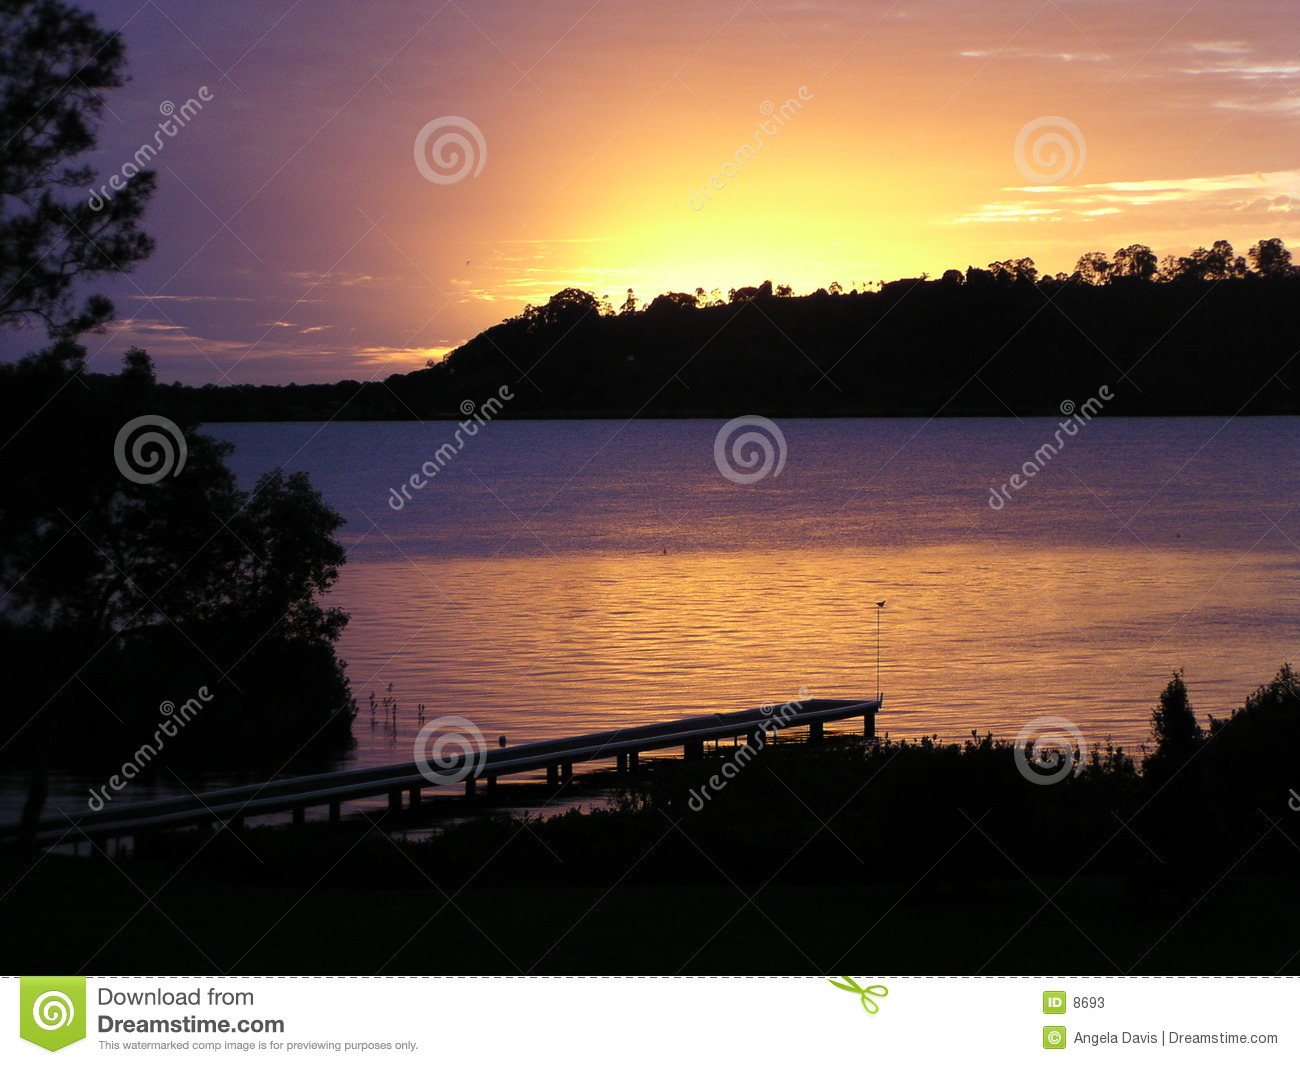 Dawn on the River 2